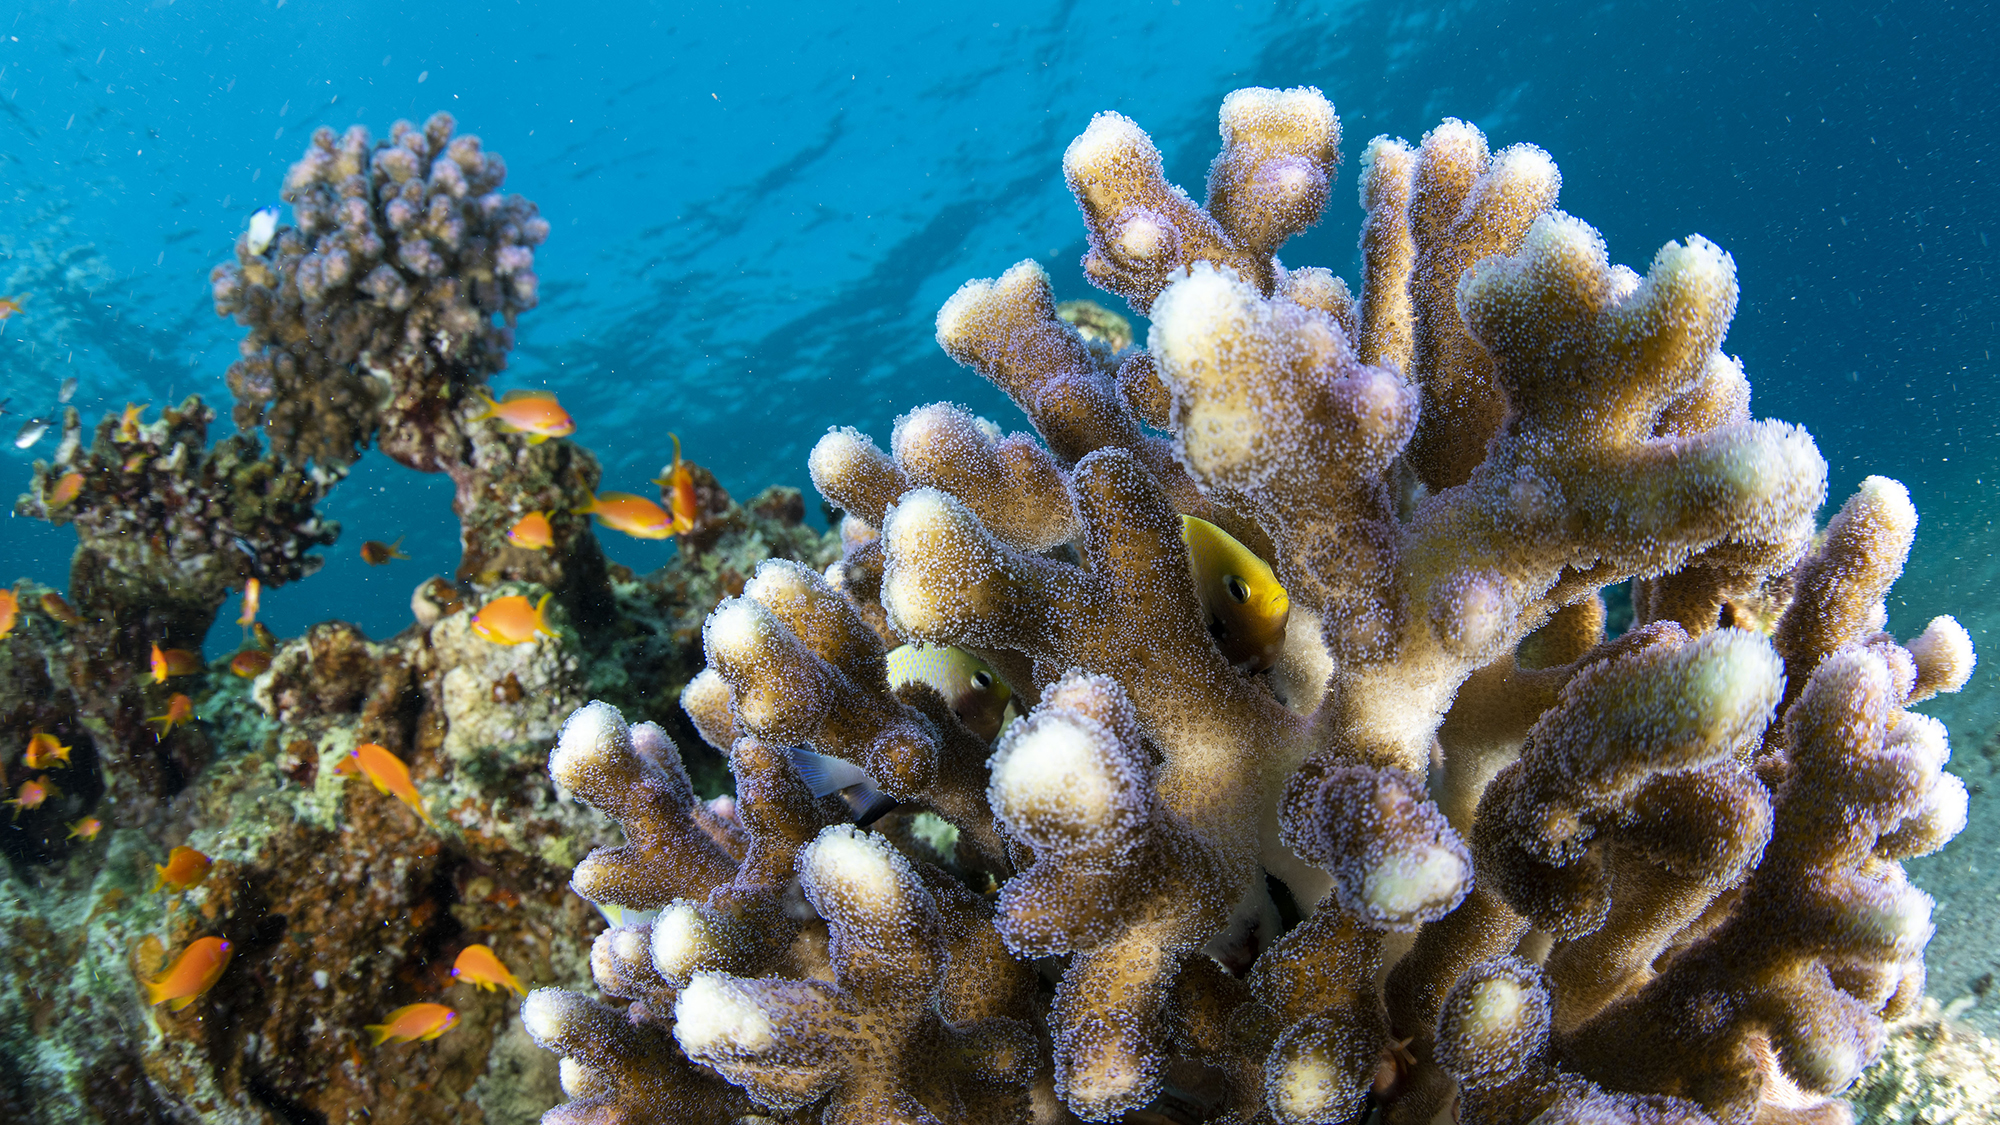 Immune cells found for the first time in a coral